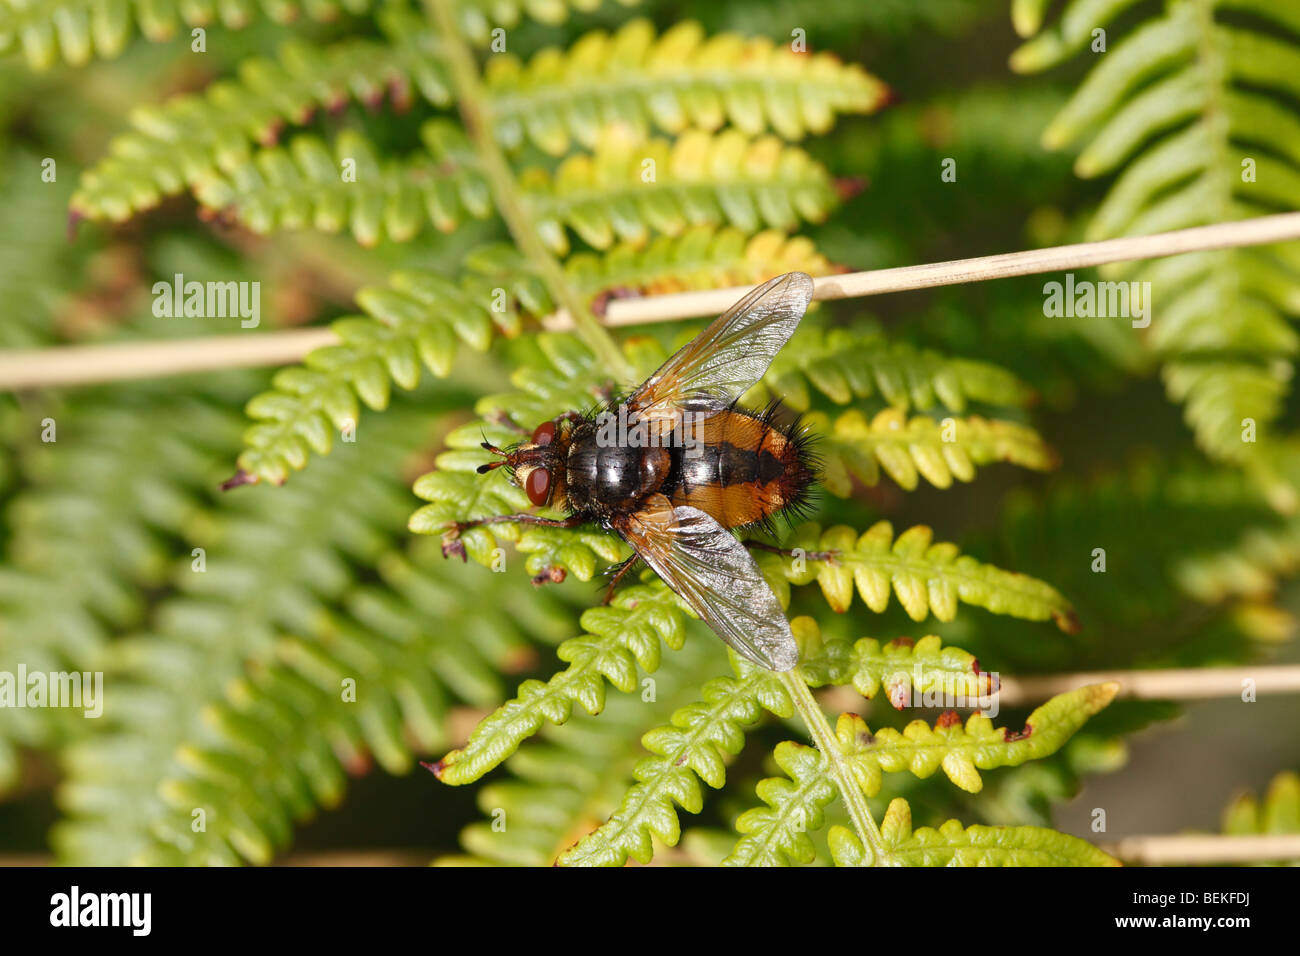 Fly (Tachinsa fera) at rest on bracken frond - Stock Image